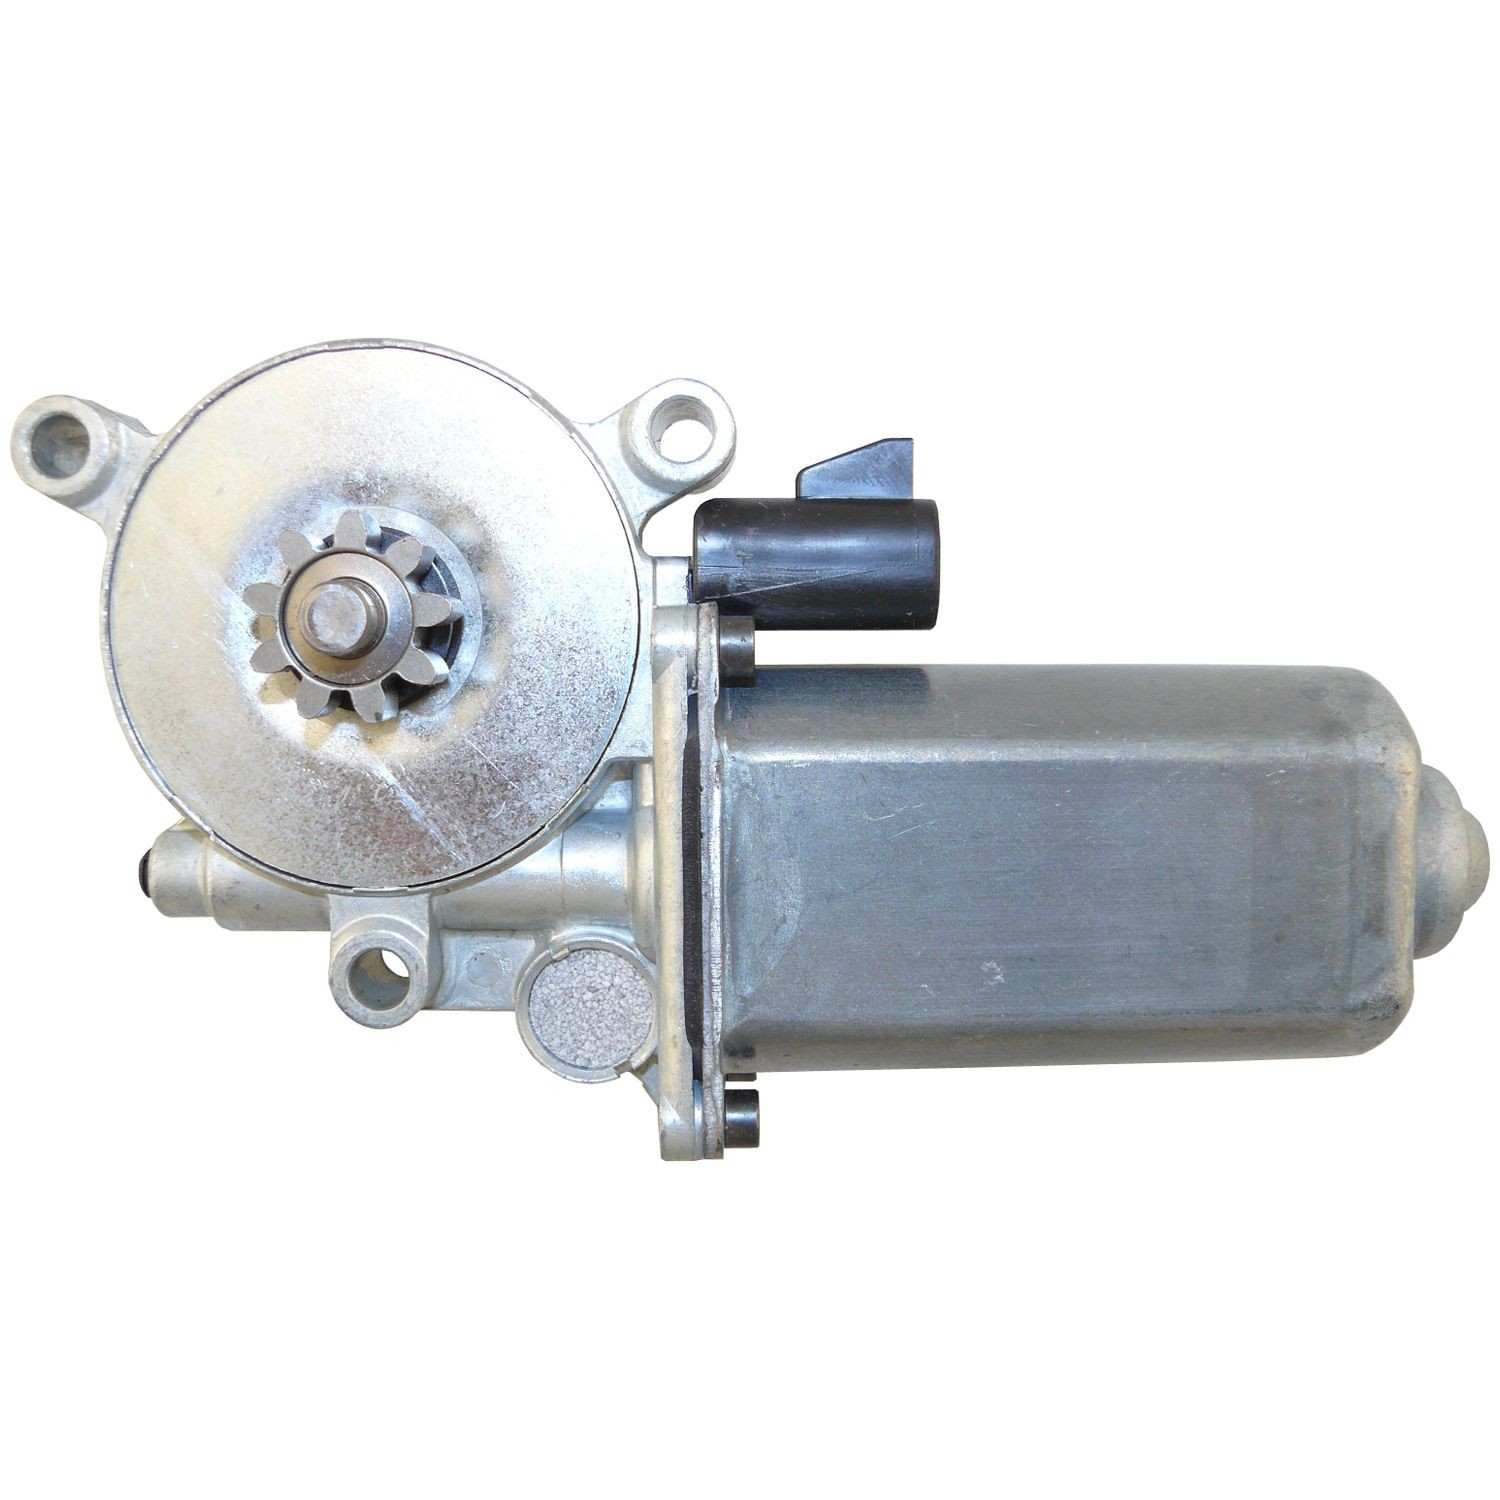 MAGNETI MARELLI OFFERED BY MOPAR - Power Window Motor - MGM 1AMWM82244